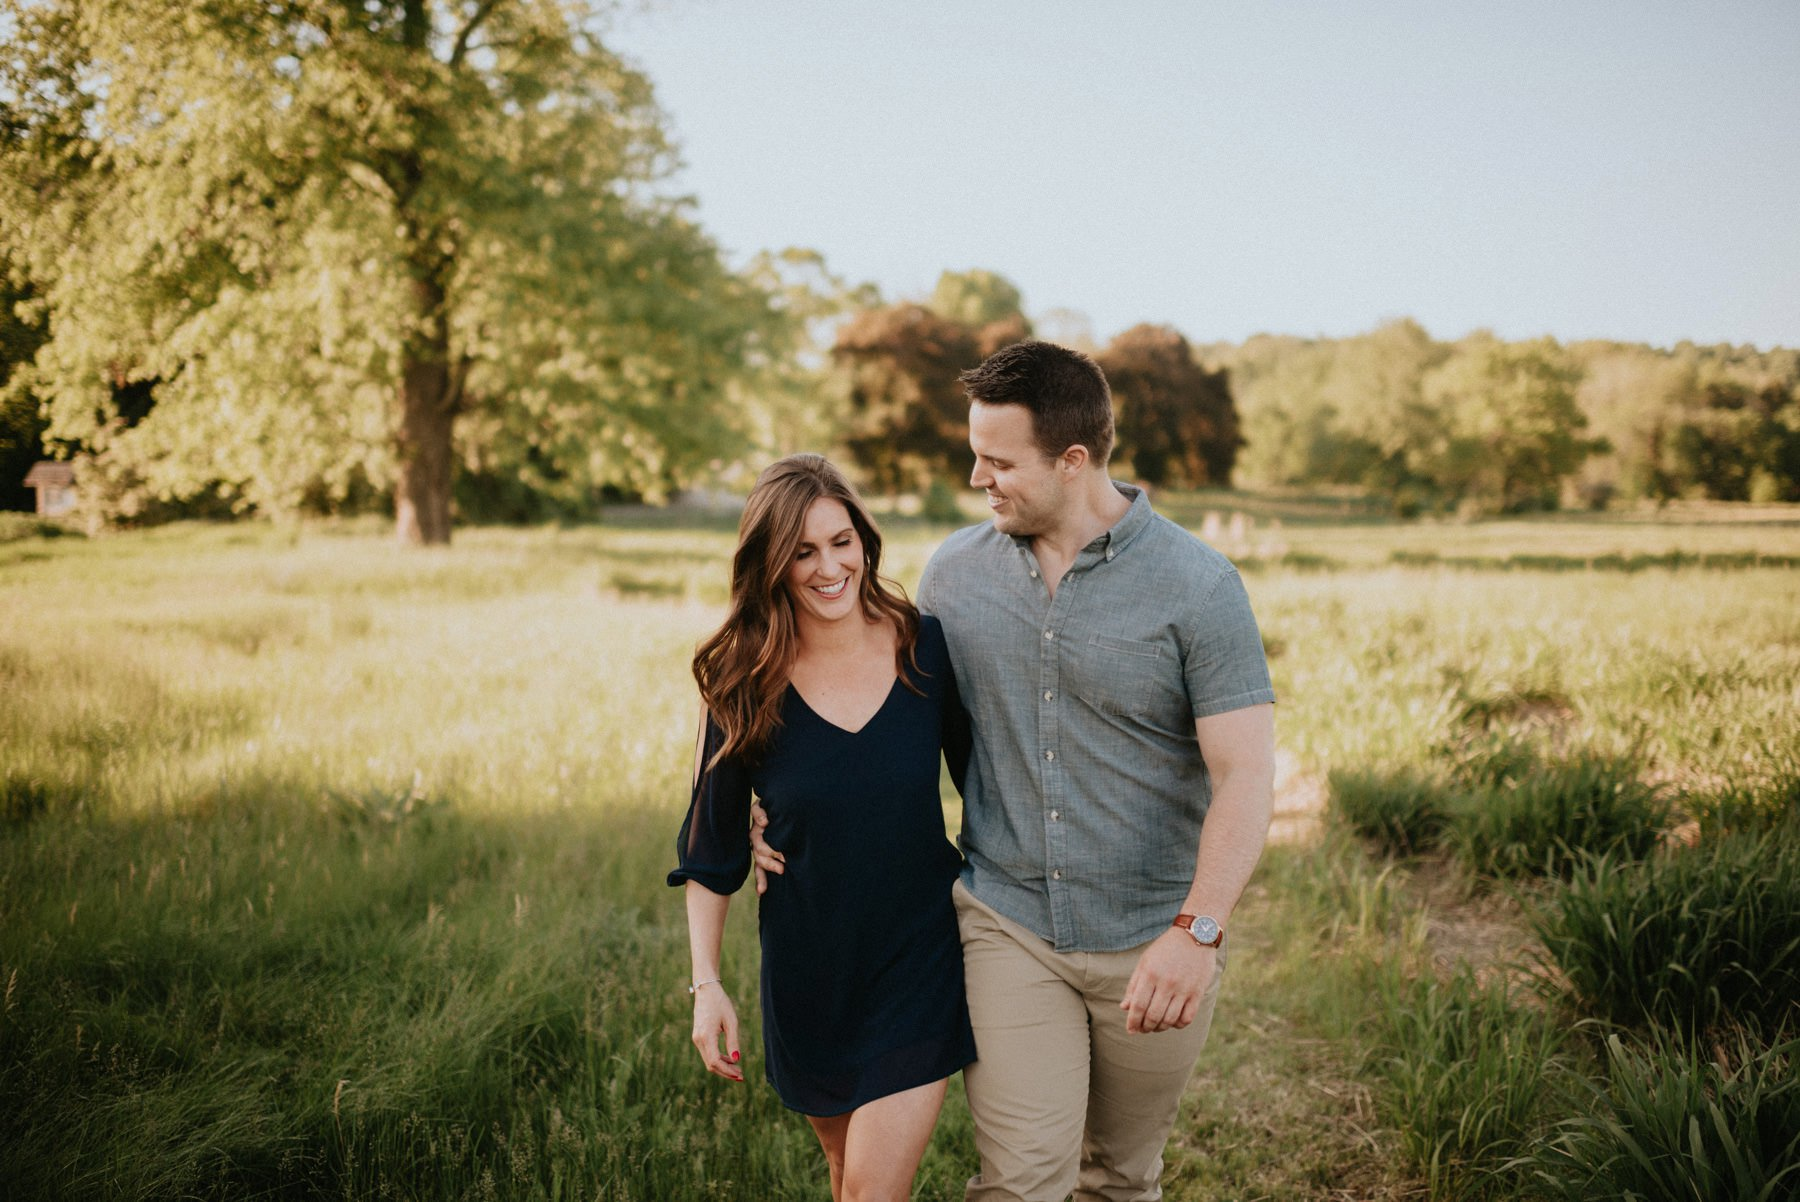 Newtown-square-engagement-session-3.jpg